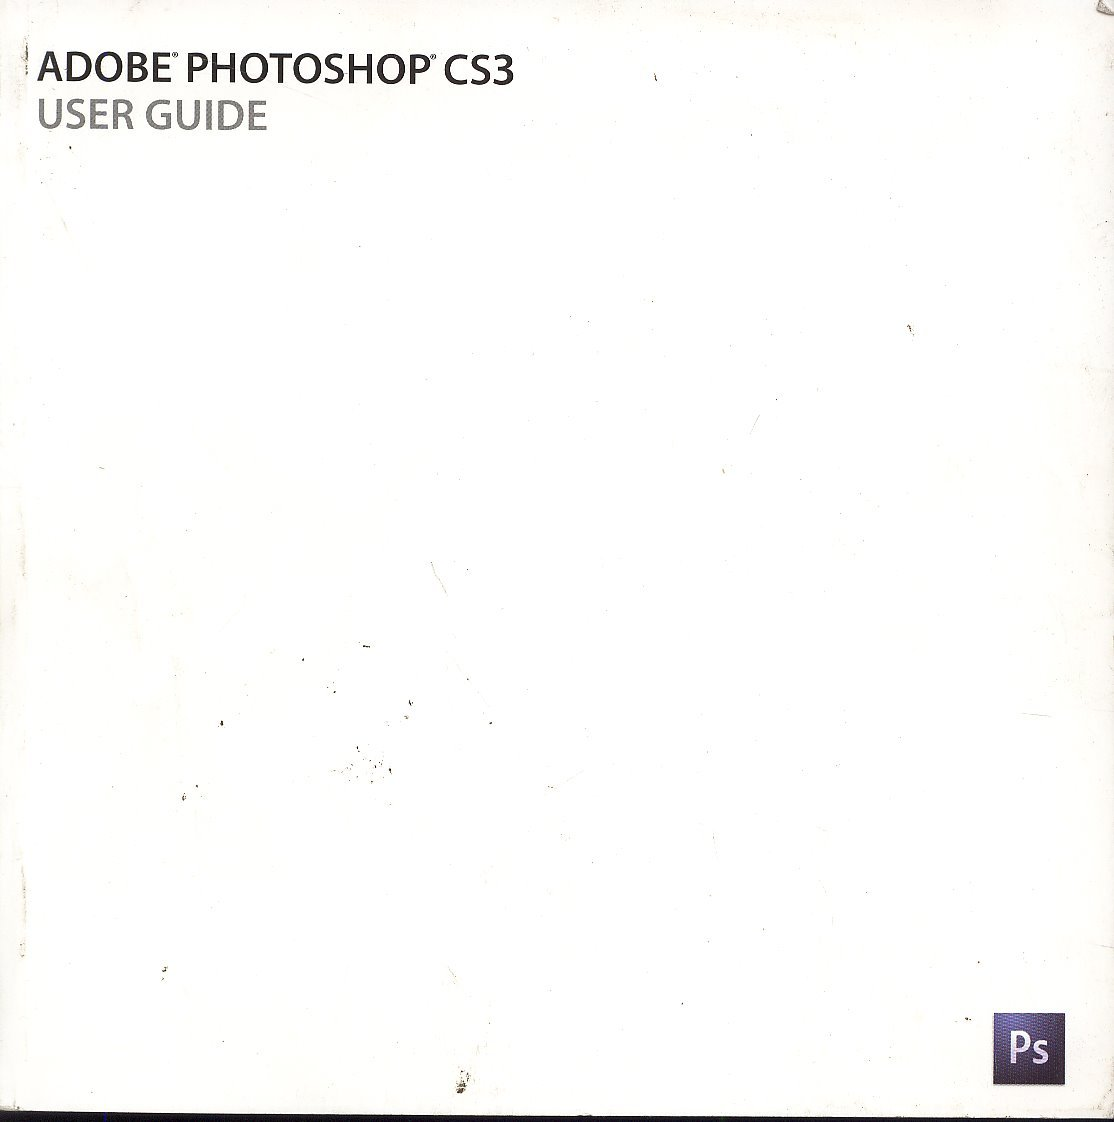 adobe photoshop cs3 user guide adobe systems amazon com books rh amazon com adobe photoshop cs3 user guide pdf adobe photoshop cs3 extended user guide